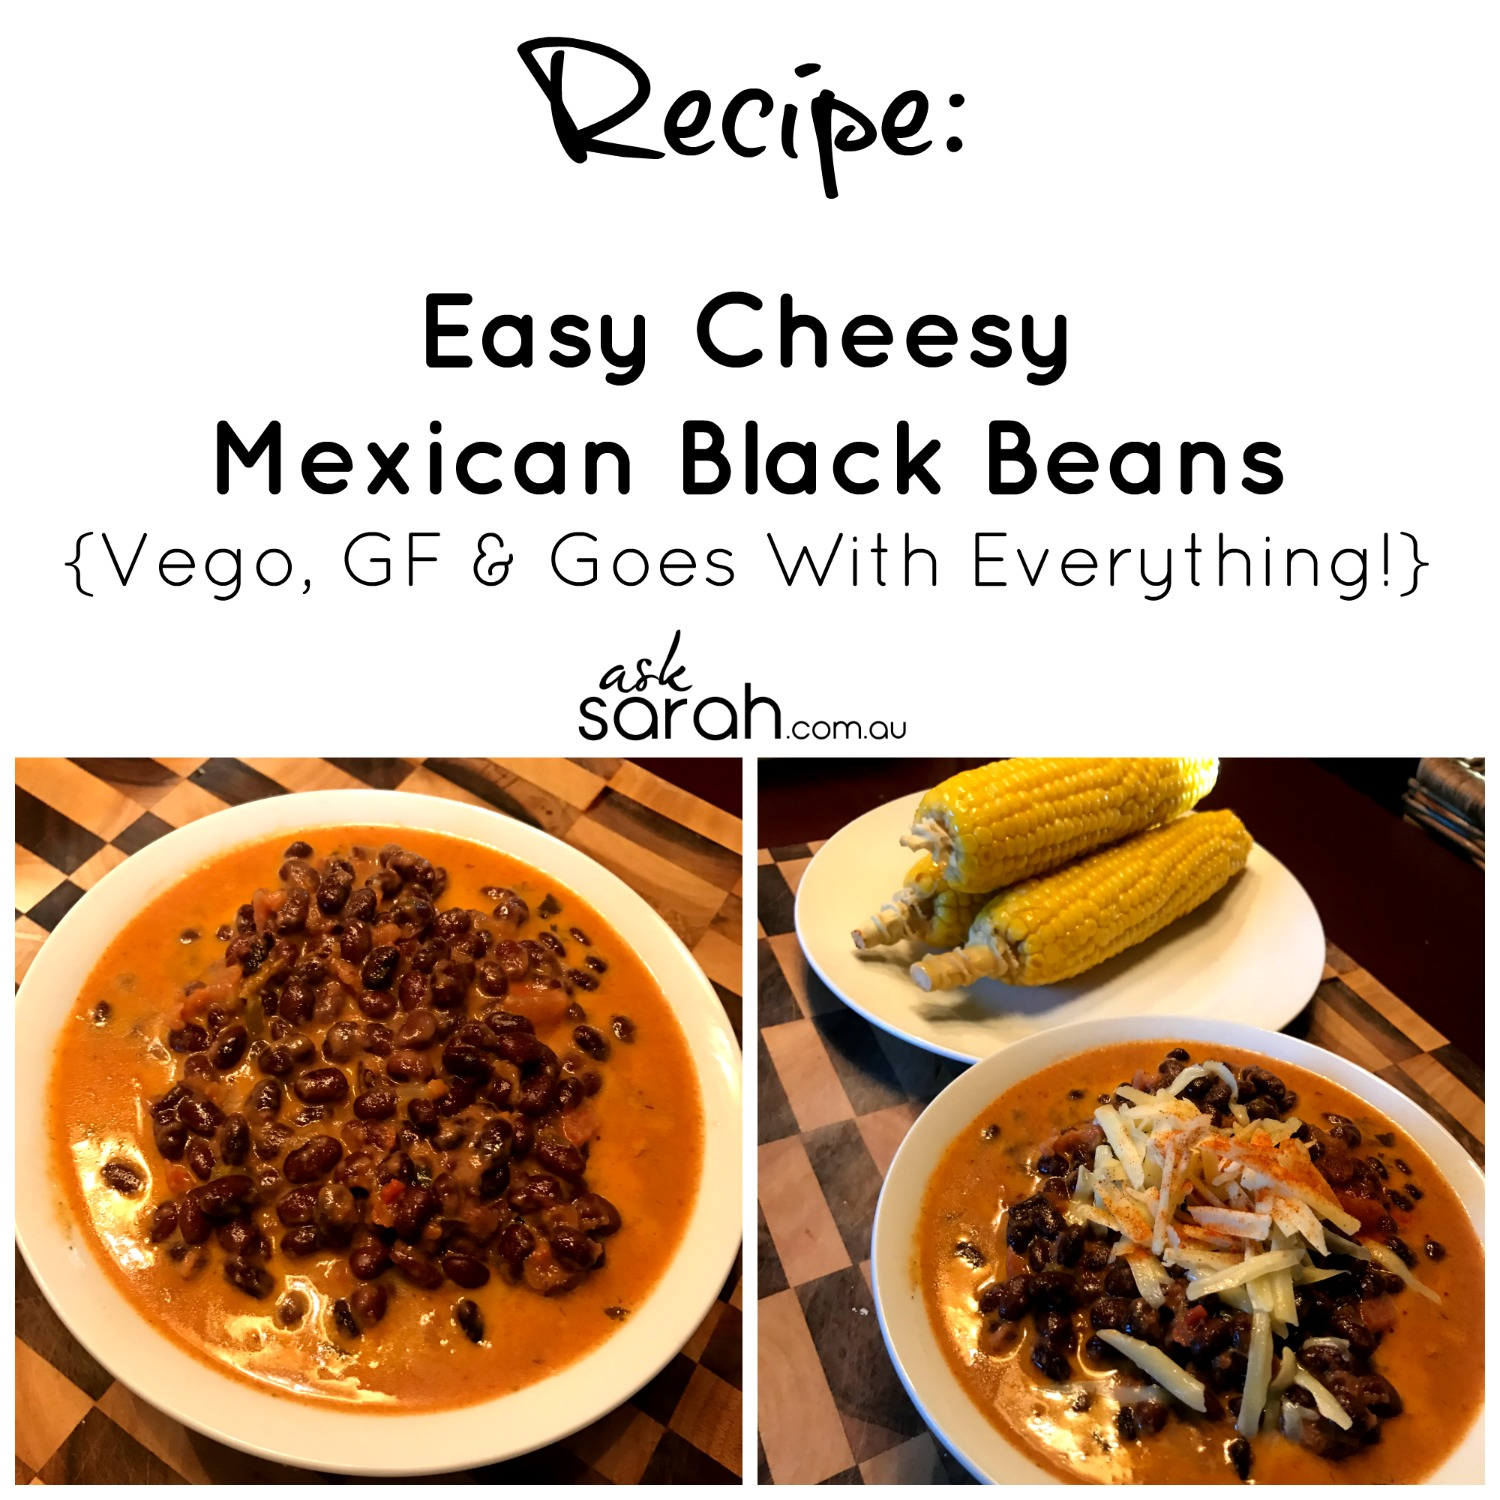 Recipe Easy Cheesy Mexican Black Beans {Vego, GF & Goes With Everything!}